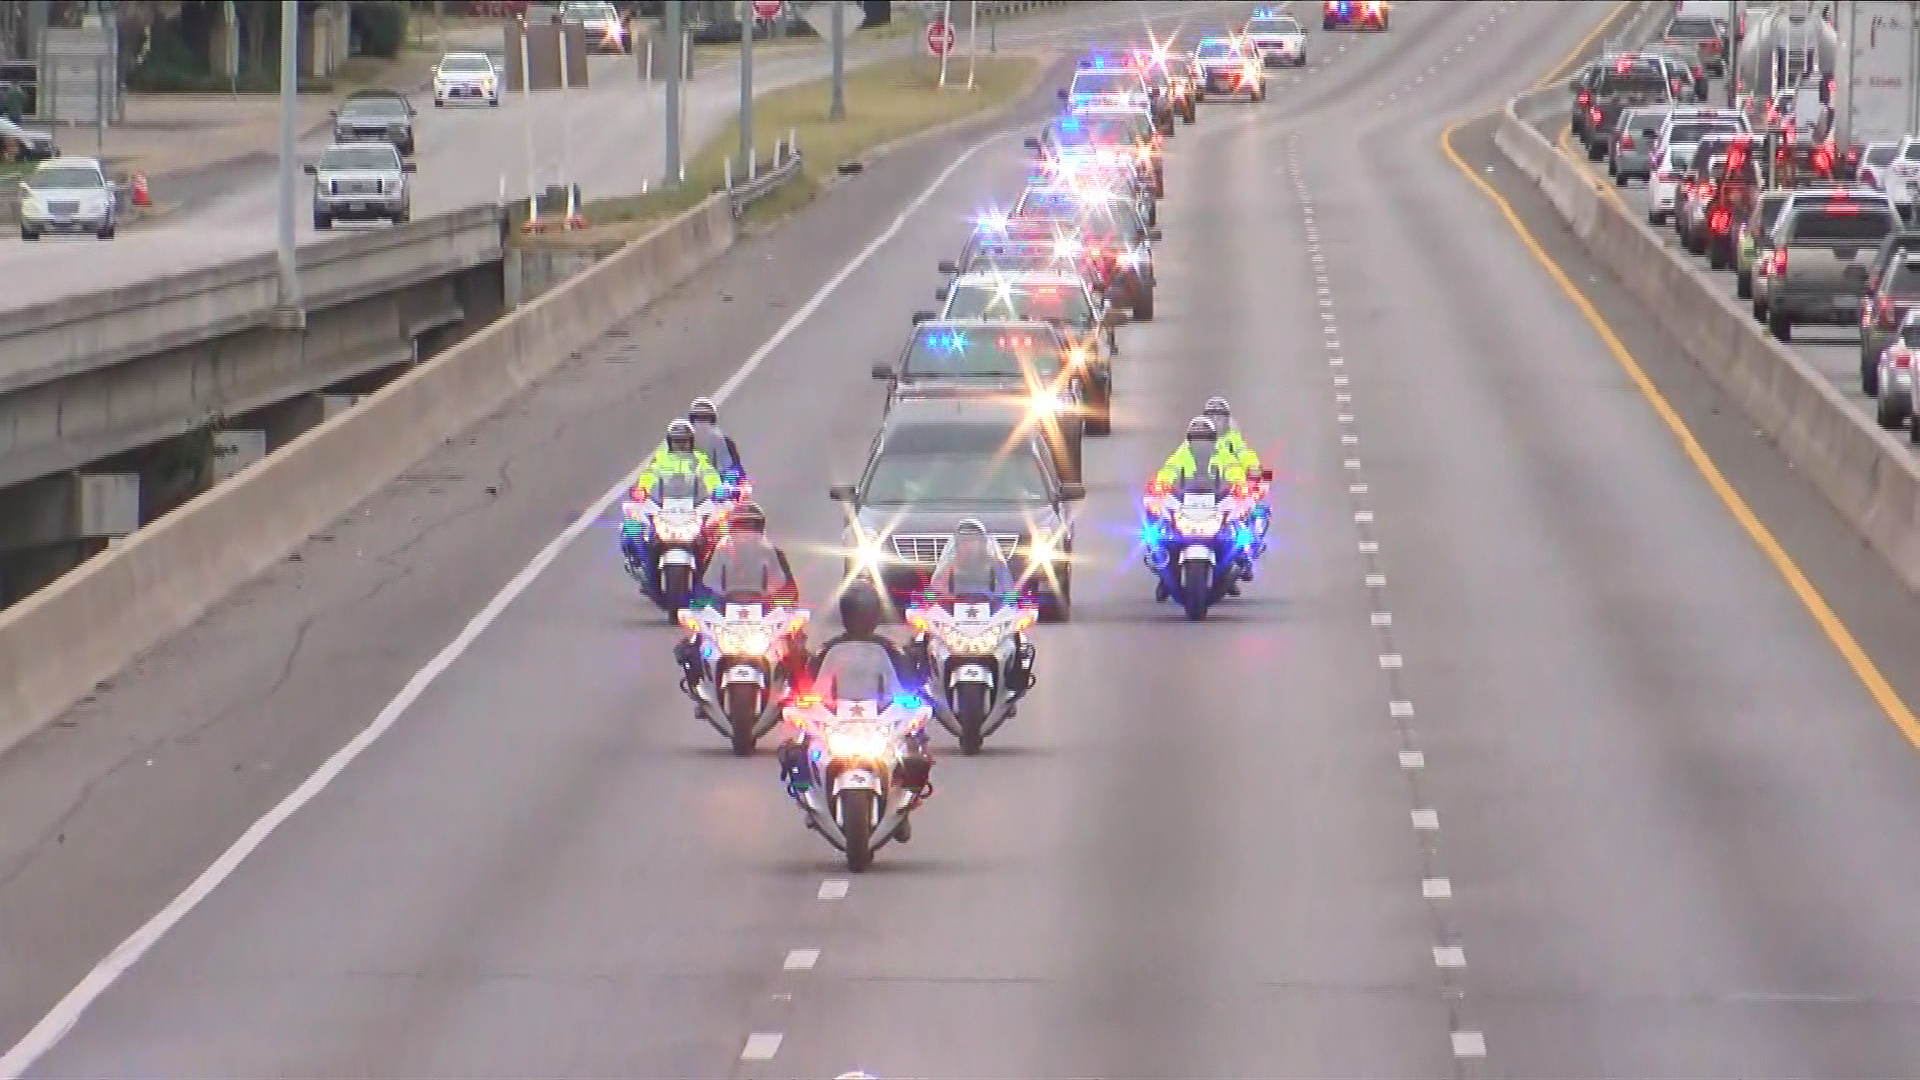 The body of Officer Ken Copeland was escorted from Austin to a funeral home in San Marcos on Tuesday afternoon. (Photo: CBS Austin)